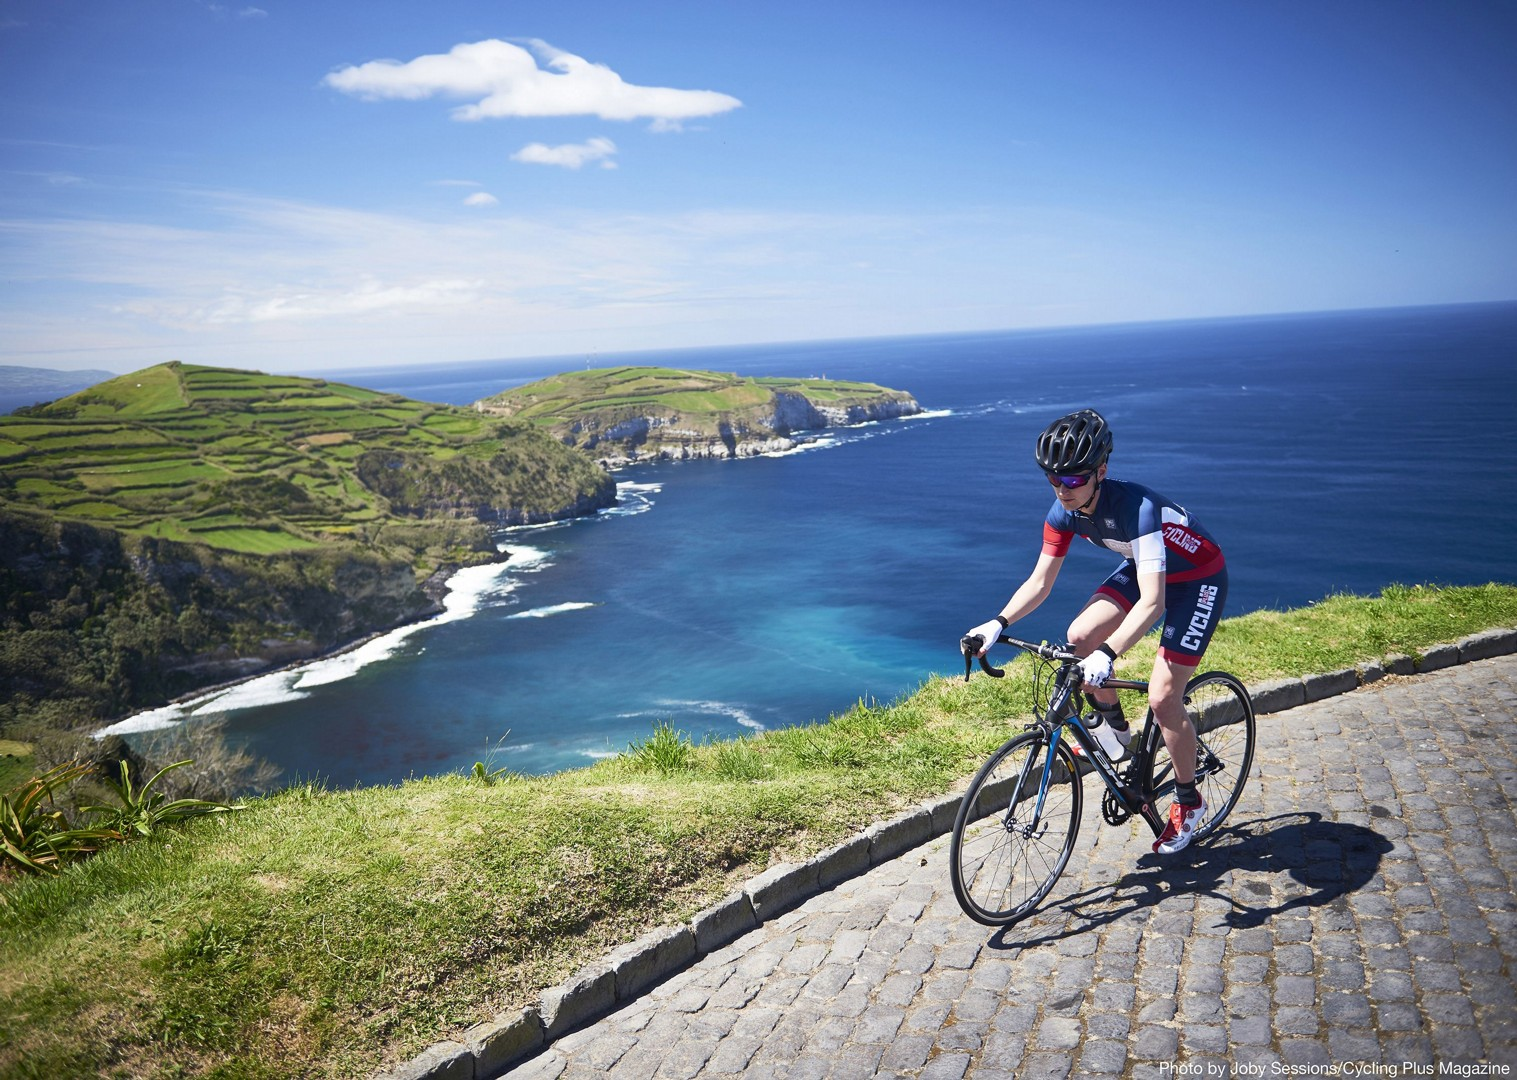 guided-road-cycling-holiday-the-azores-lost-world-of-sao-miguel.jpg - The Azores - Lost World of Sao Miguel - Road Cycling